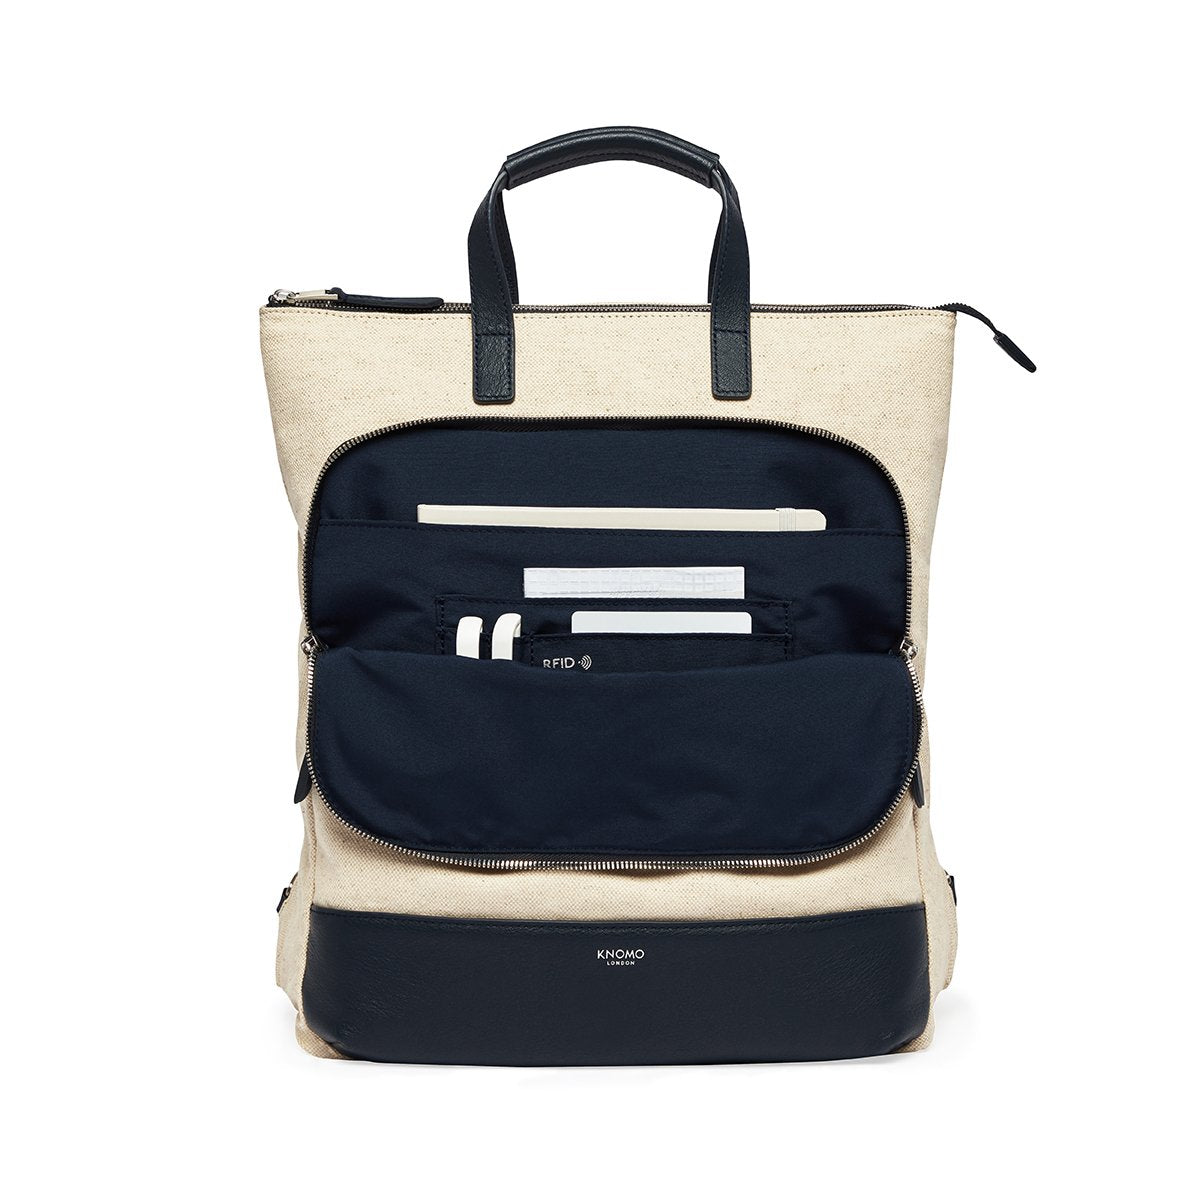 "KNOMO Harewood Totepack 15"" Front Pocket With Items 15"" -  Natural 